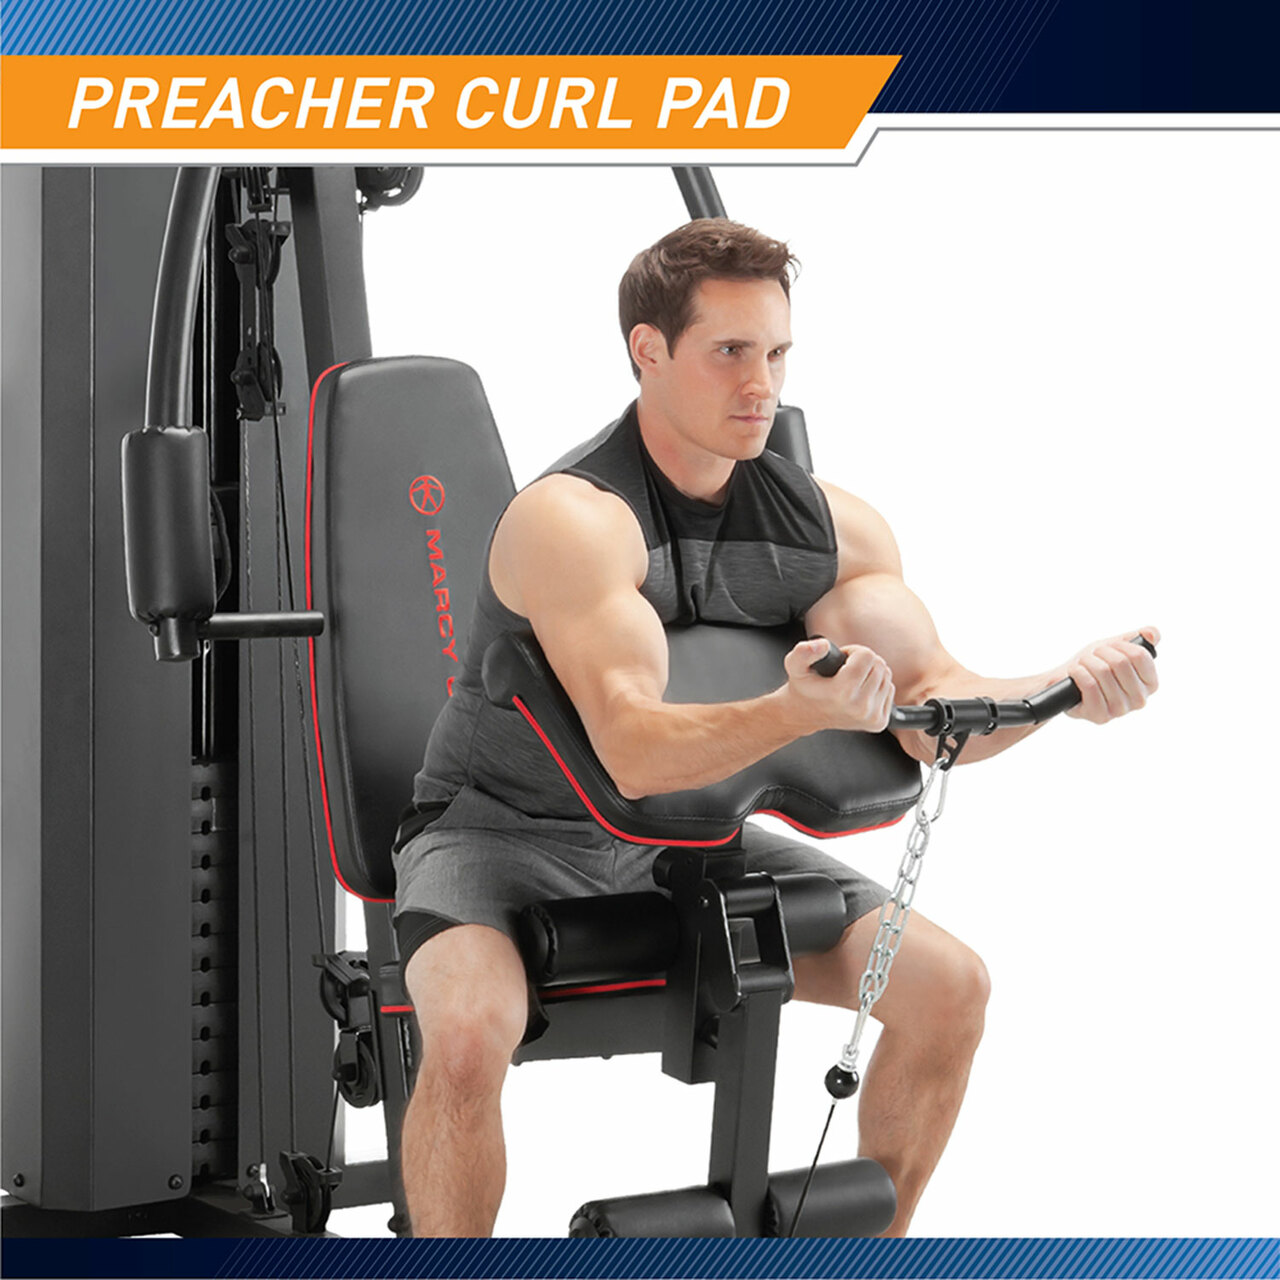 The Marcy Club 200 Lb Home Gym MKM-81010 has an adjustable preacher curl pad